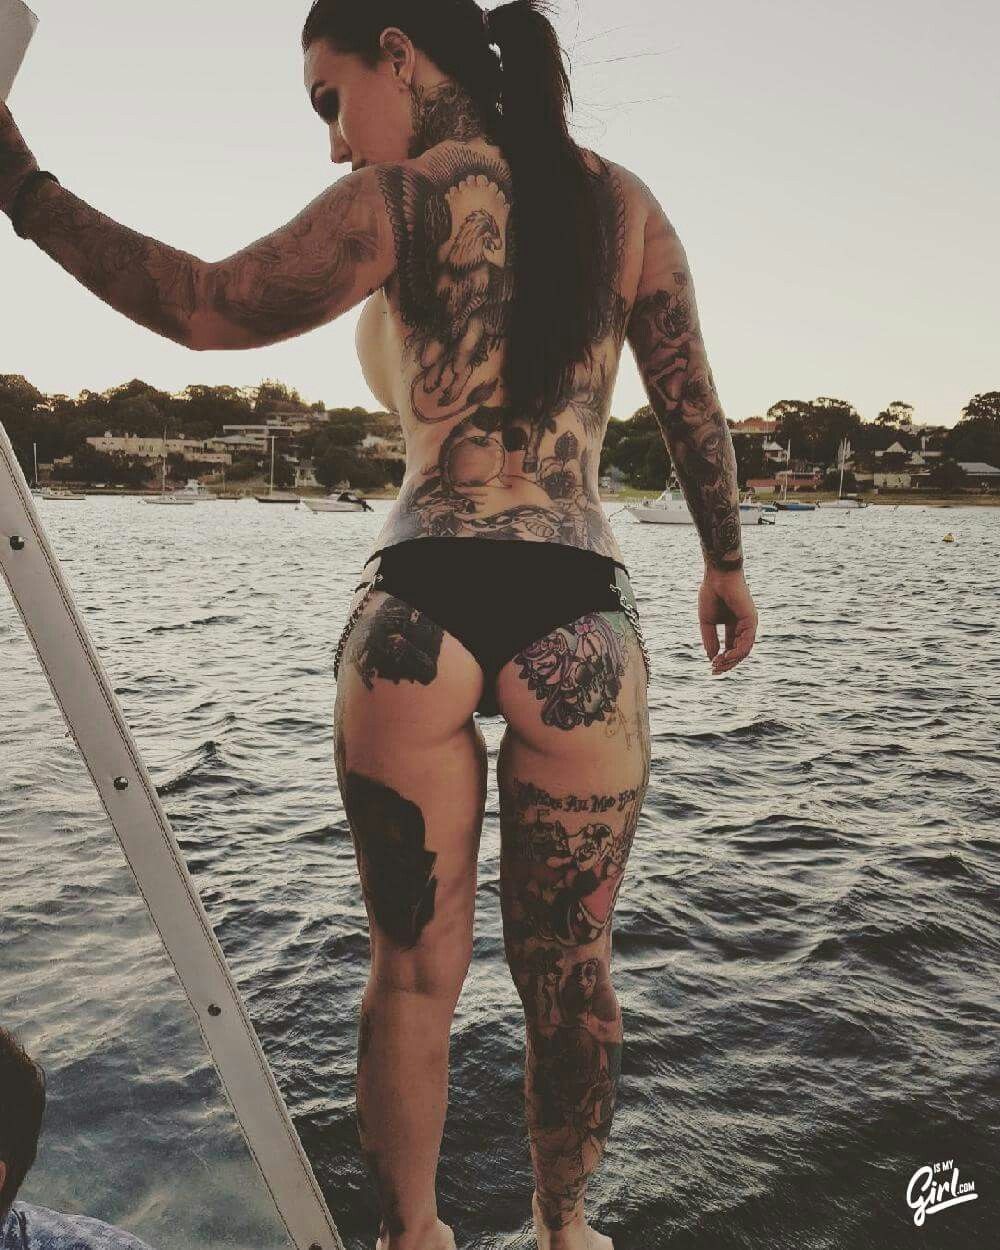 Cute tattoo ideas for lower back pin by jacob payne on tattoos and wild color hair  pinterest